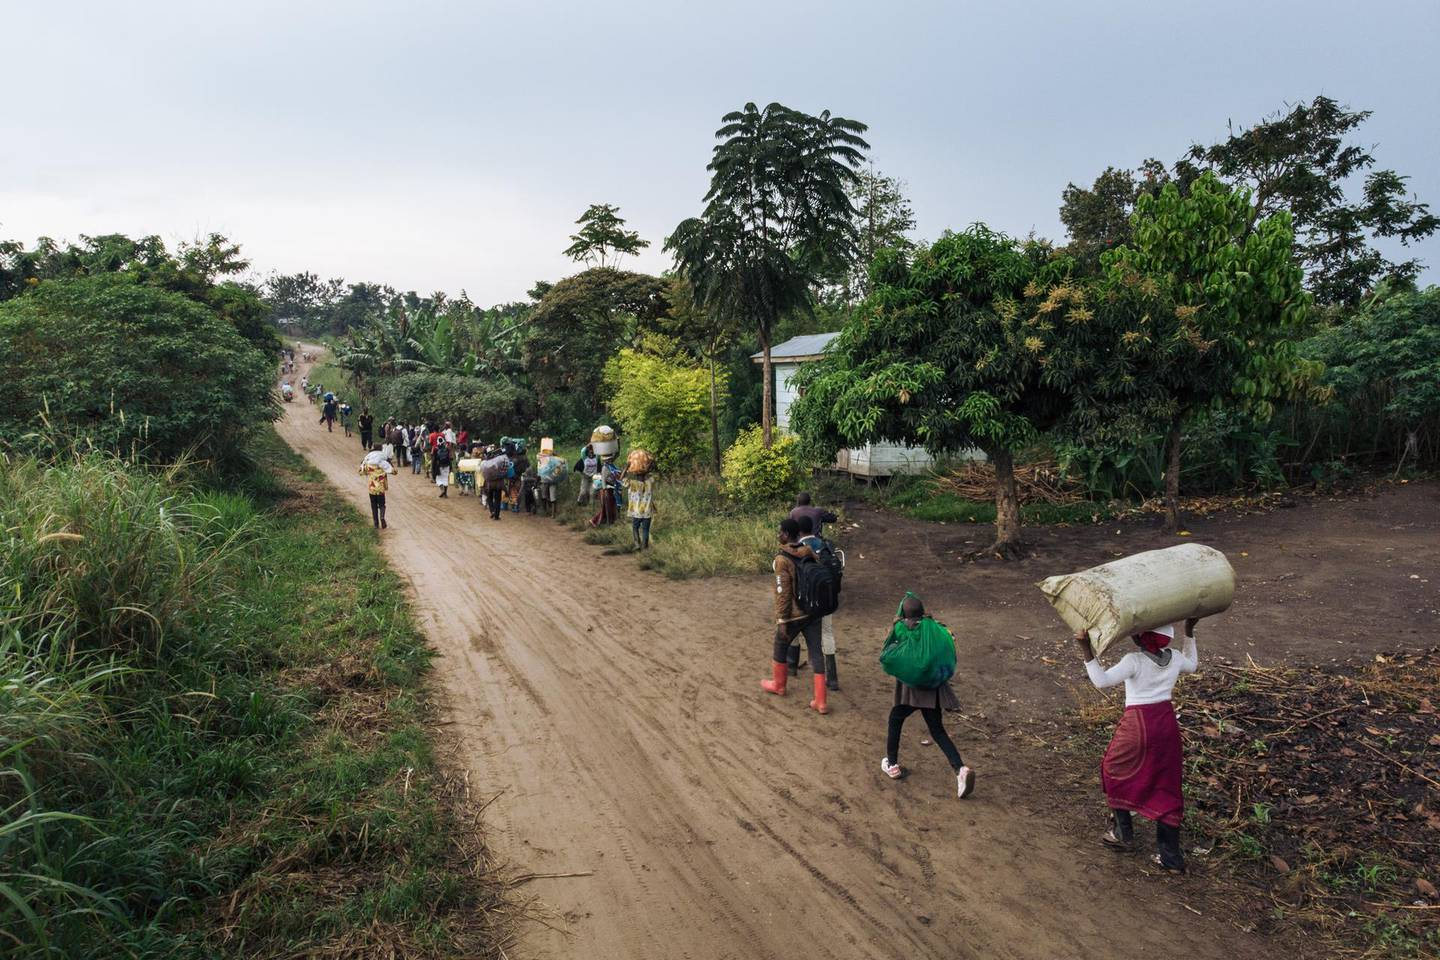 Displaced people carrying their belongings flee the scene of an attack allegedly perpetrated by the rebel group Allied Democratic Forces (ADF) in the Halungupa village near Beni on February 18, 2020. (Photo by Alexis Huguet / AFP)